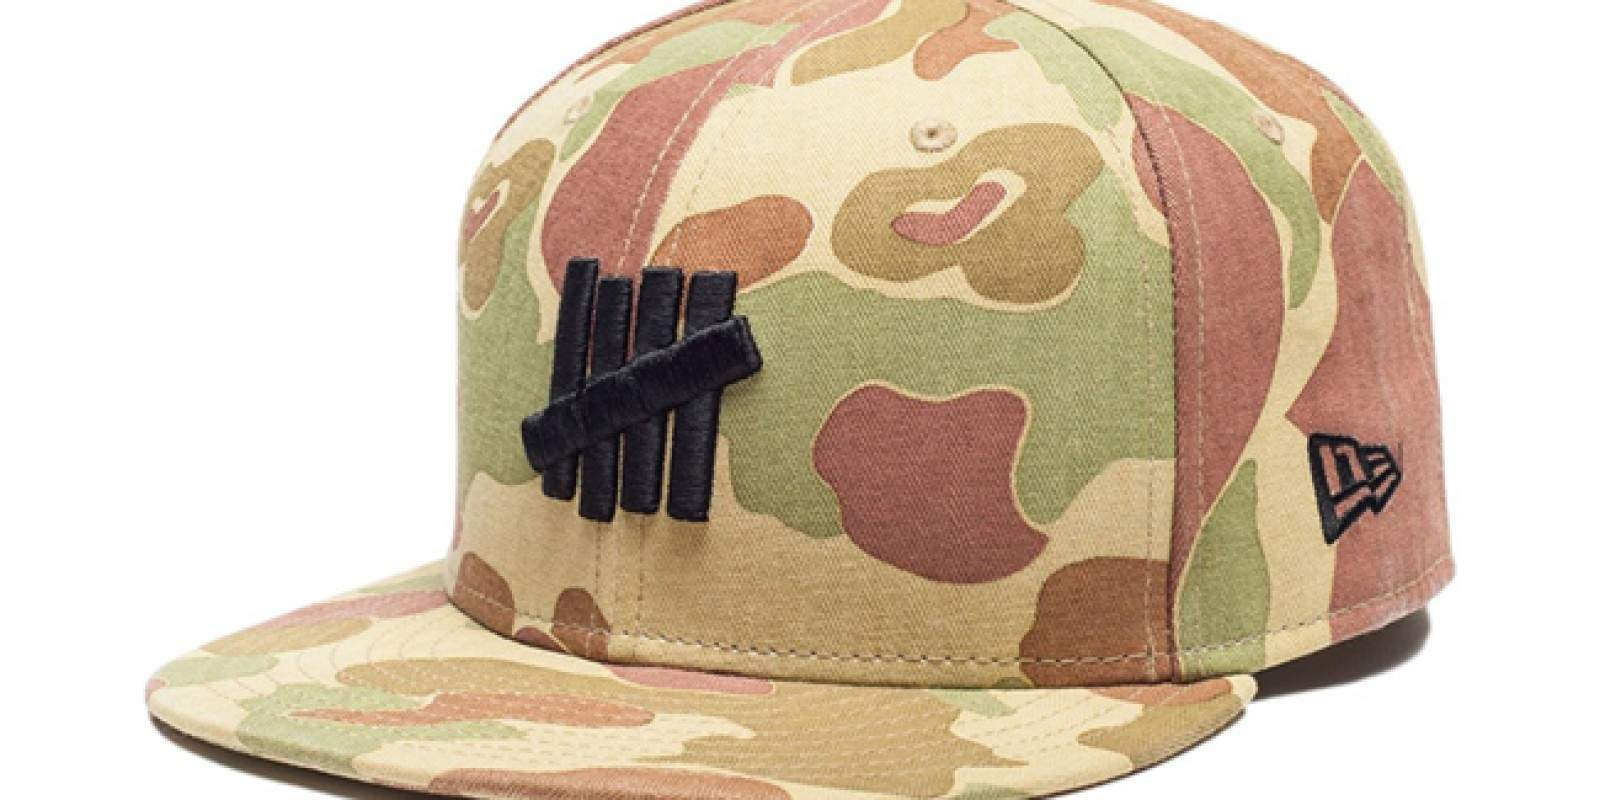 UNDEFEATED Washed Camo Capsule Collection